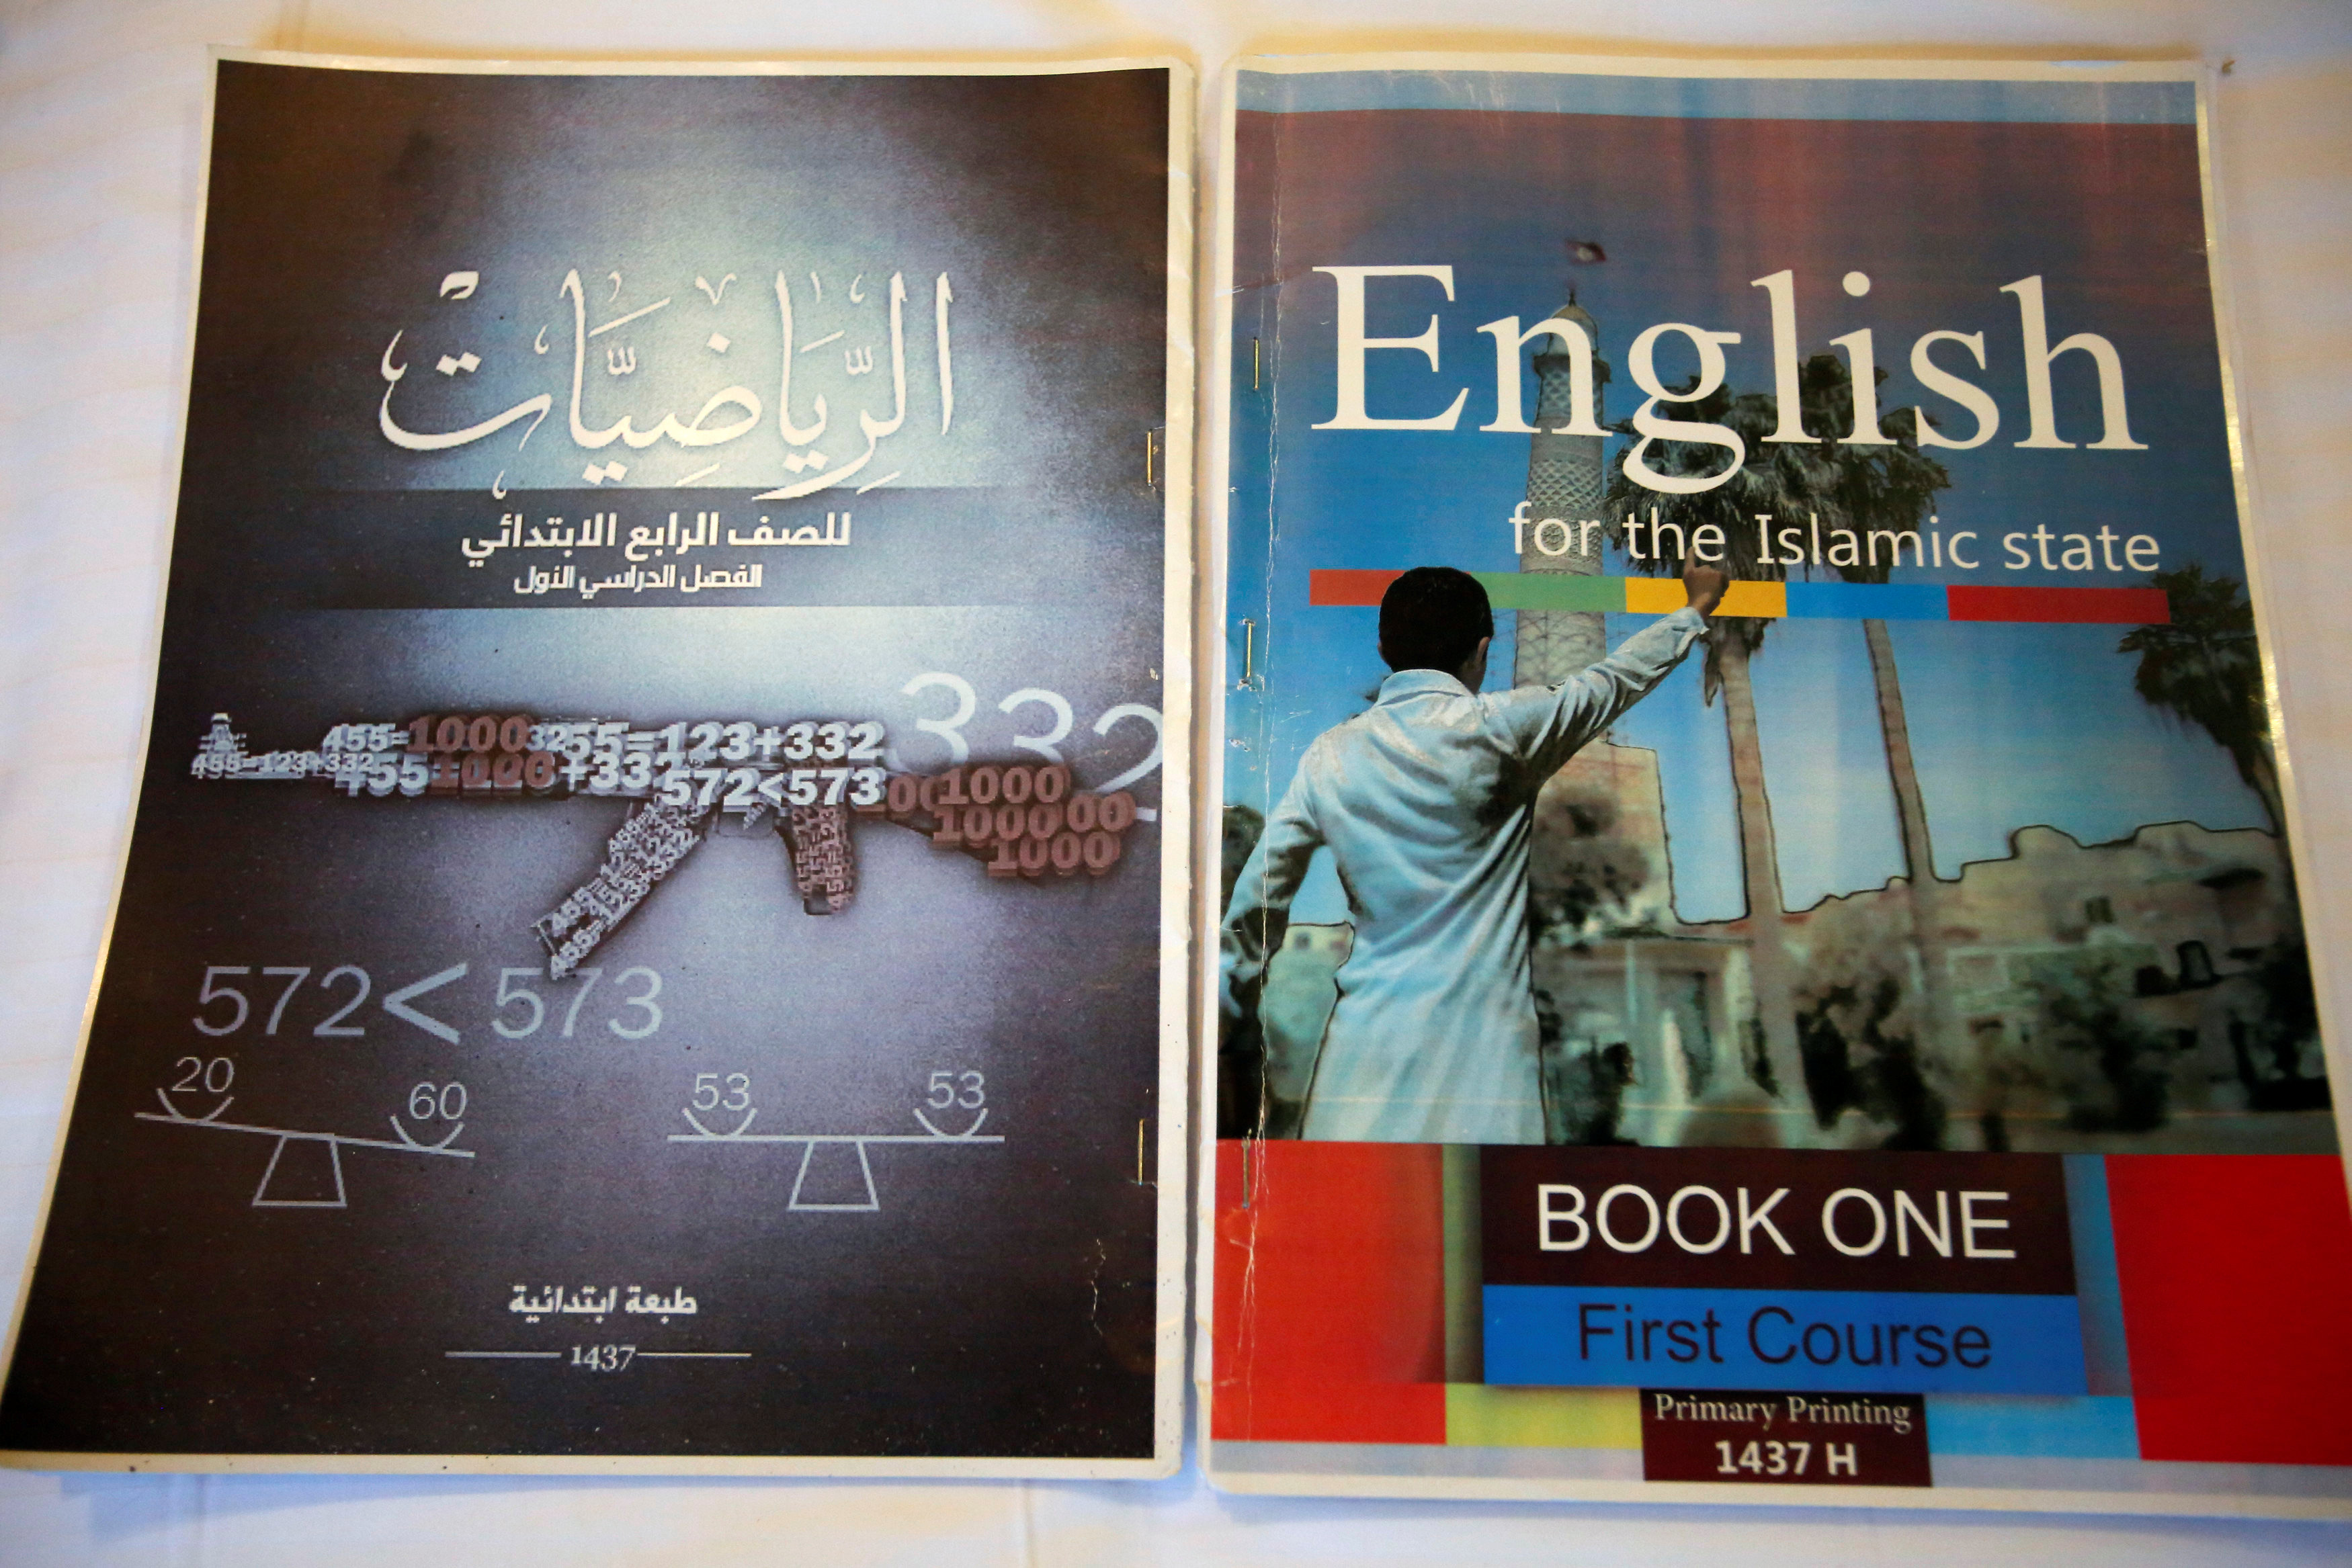 Math and English textbooks found in Islamic State facility that trained children